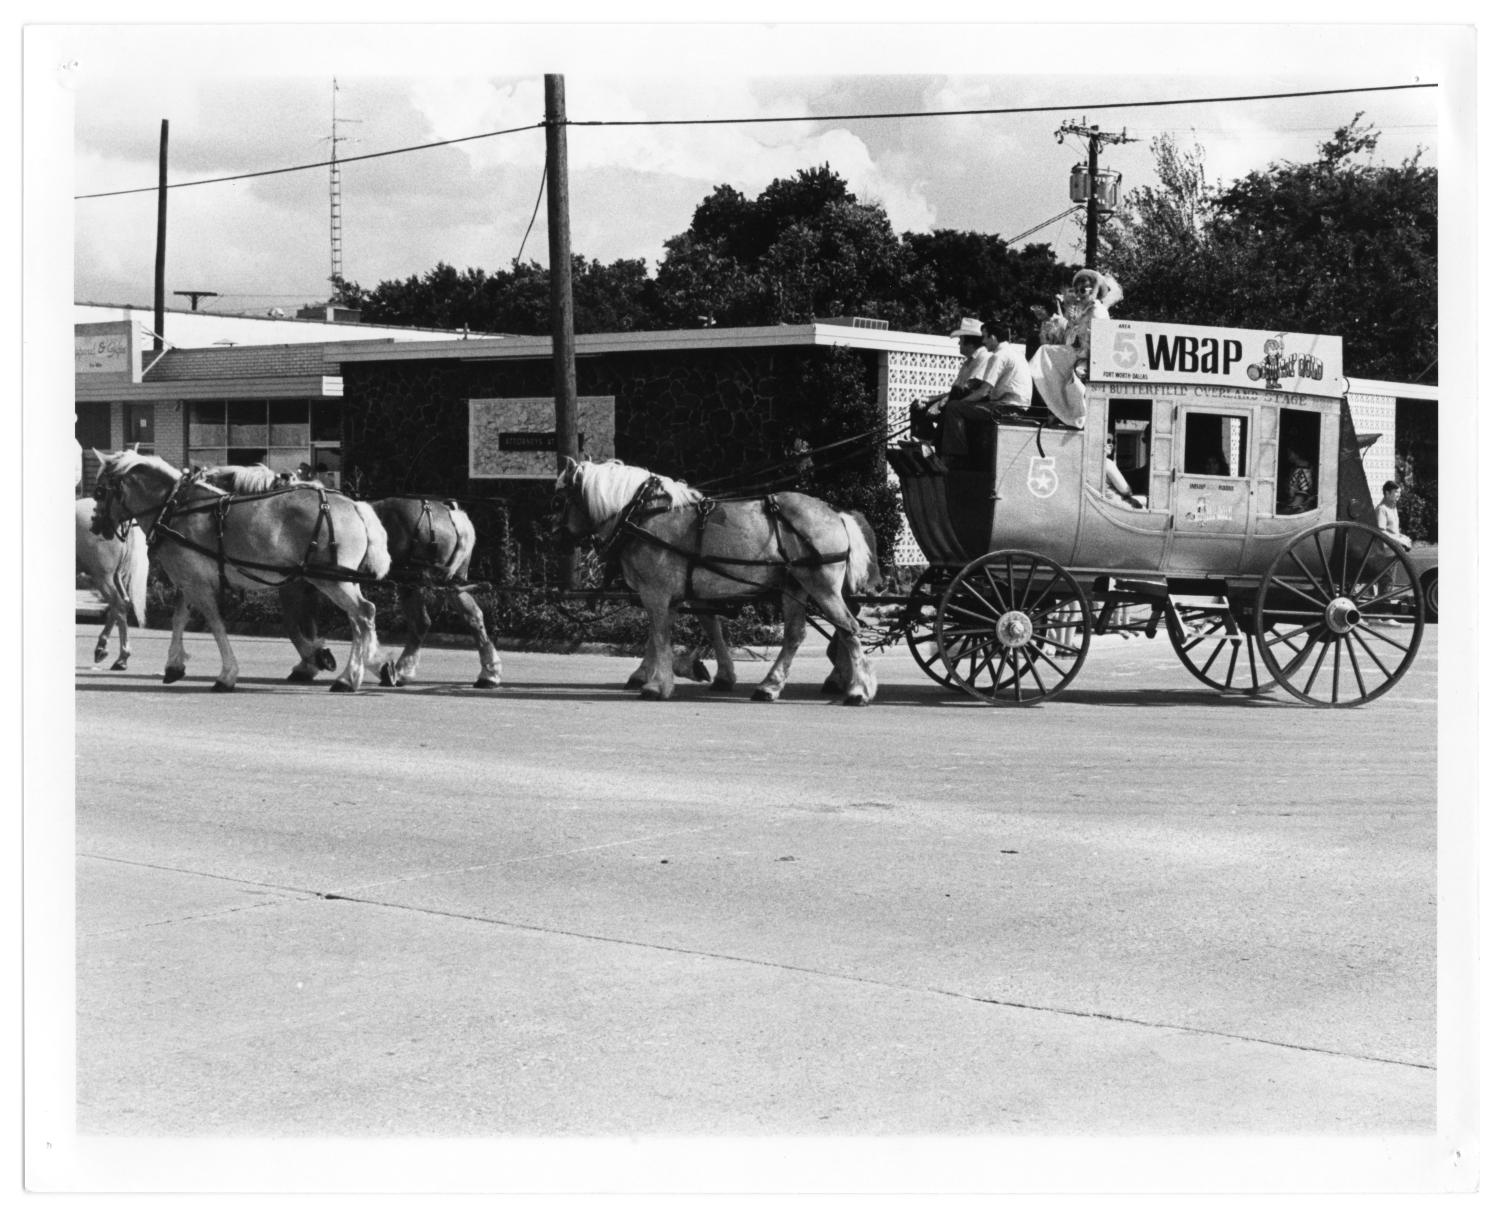 """Richardson Centennial Parade, Photograph of a stagecoach wagon float in the centennial parade, at the intersection of Main Street and Greenville Avenue in Richardson, Texas. The wagon is pulled by four matching horses, and two men and two women are riding on it. A sign on the side of the wagon says """"5 WBAP Country Gold;"""" the side of the wagon says """"Butterfield Cleveland Stage."""" In the background, there are businesses.,"""